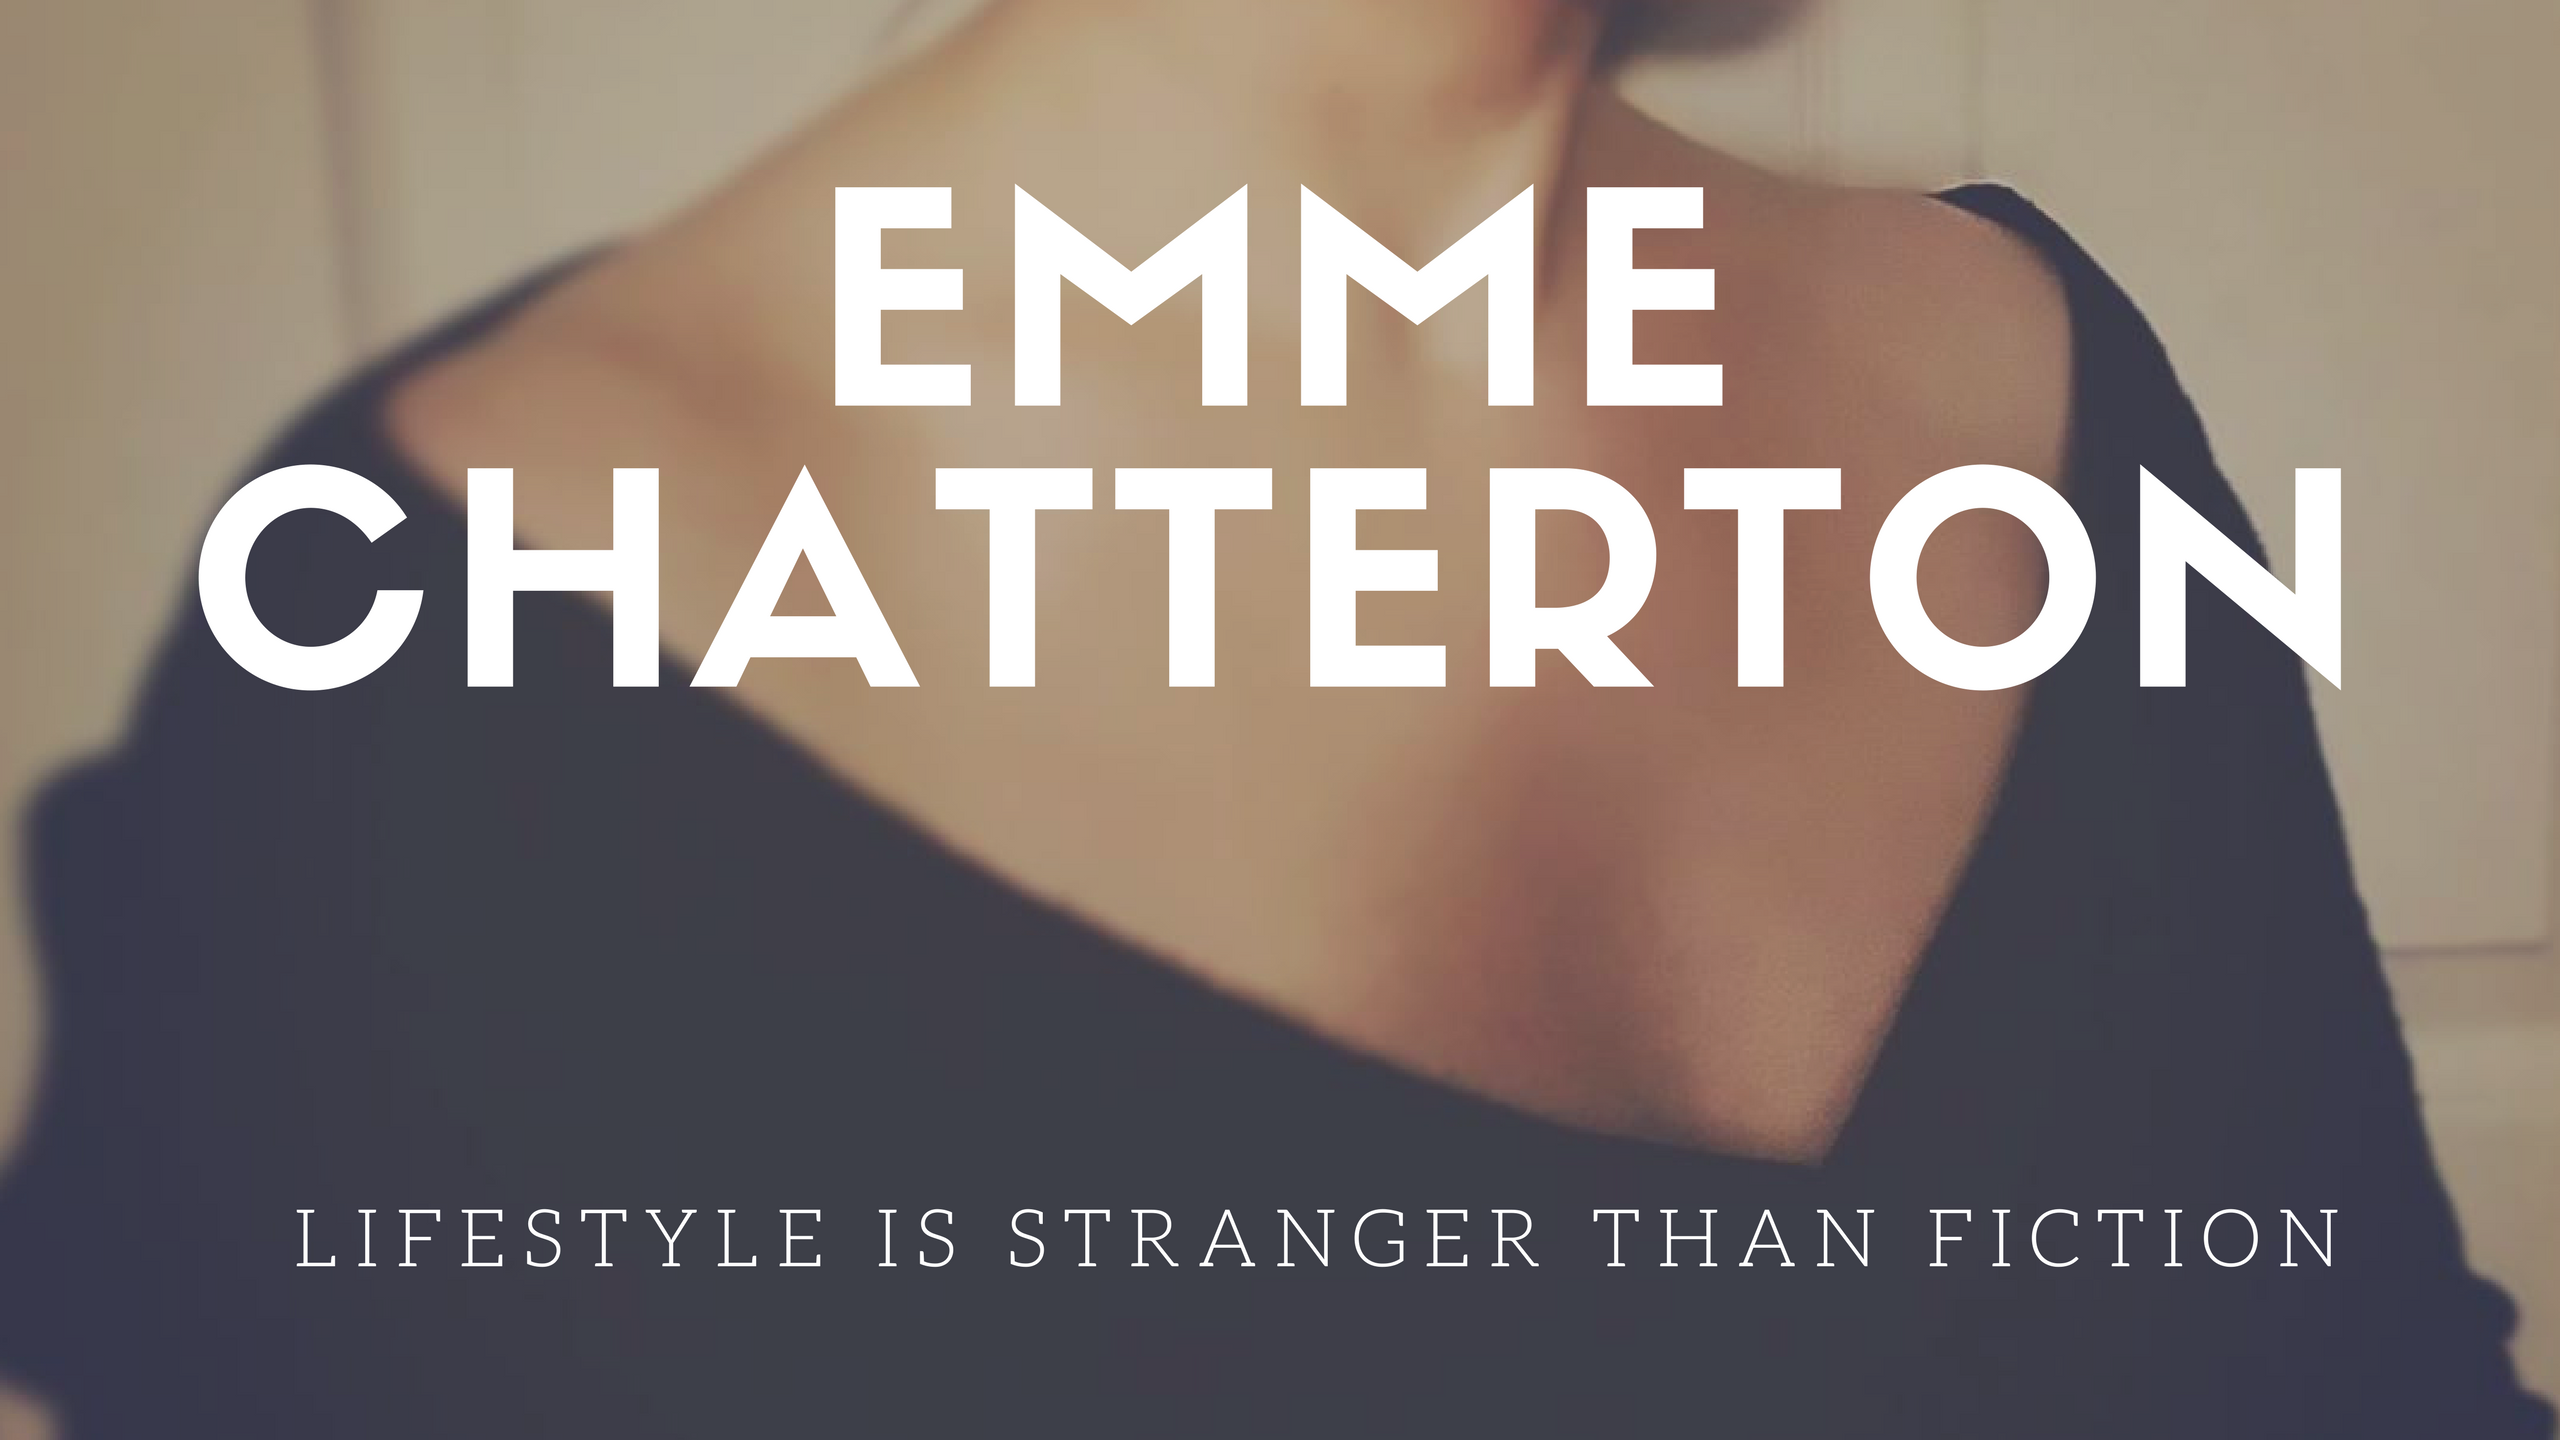 About Emme Chatterton